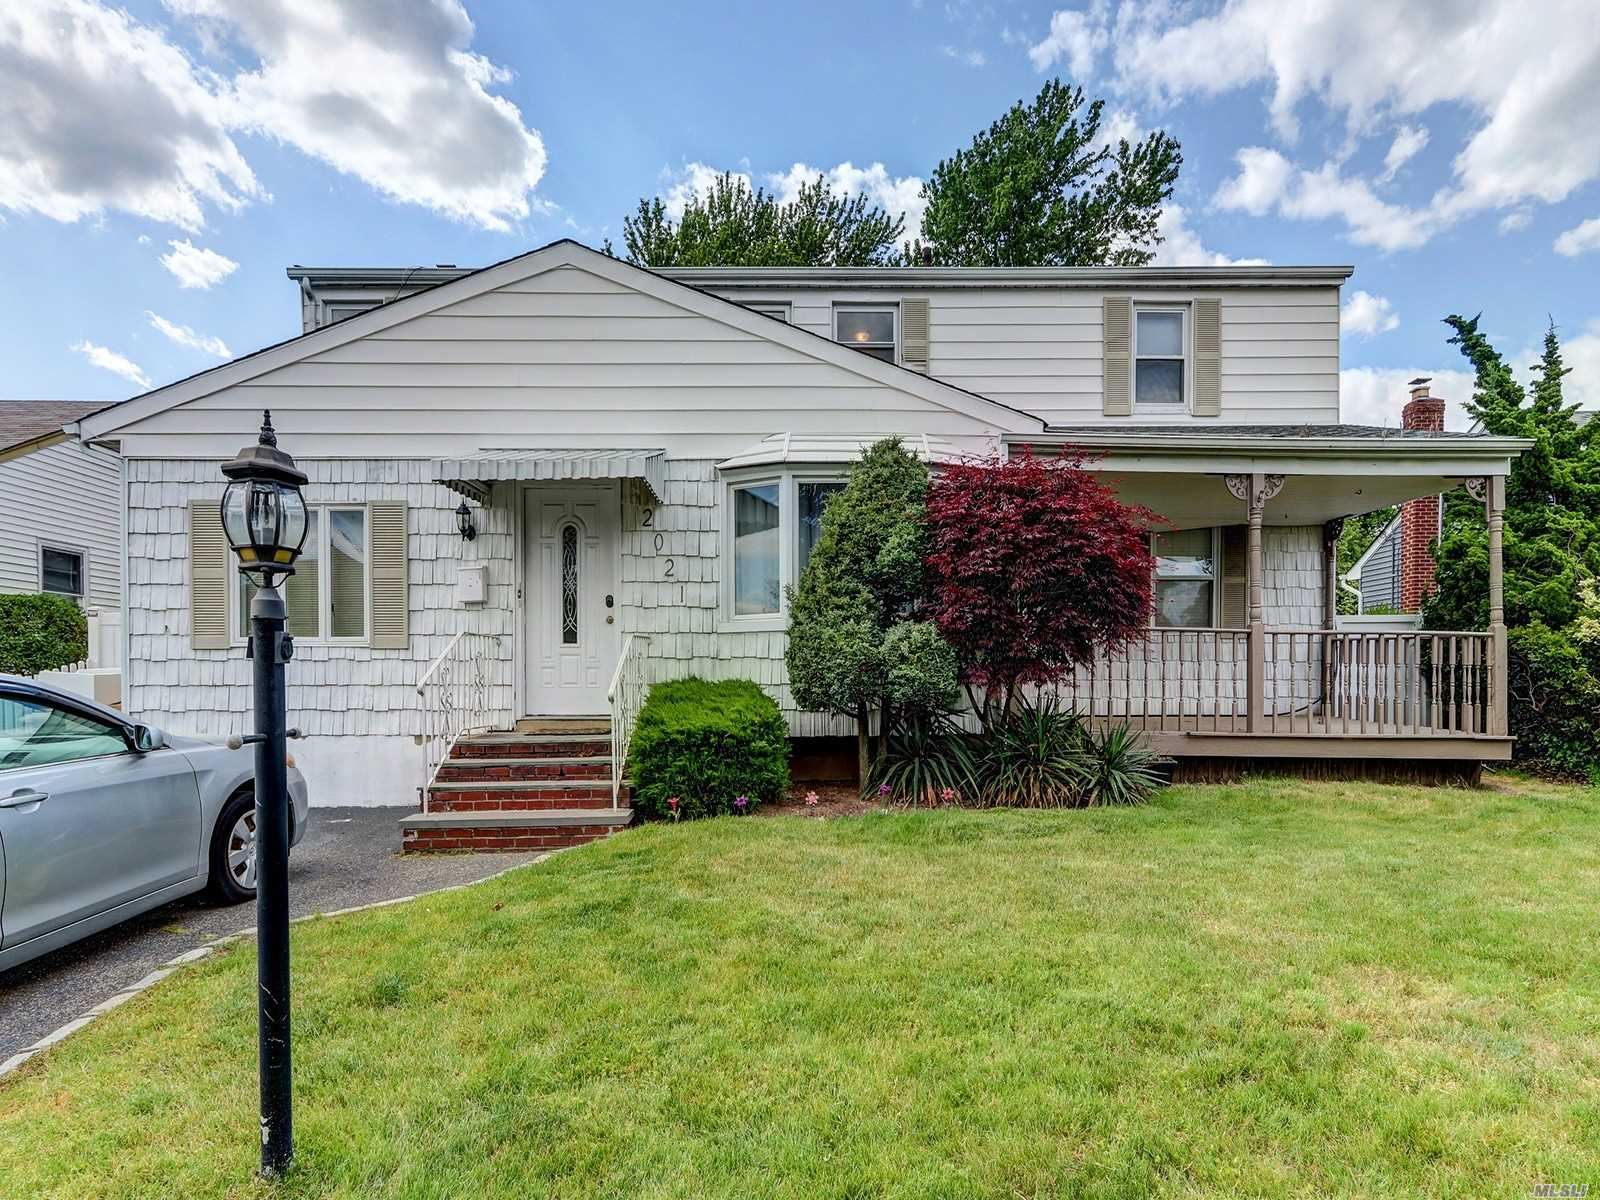 2021 Central Dr South, East Meadow, NY 11554 - MLS#: 3213029